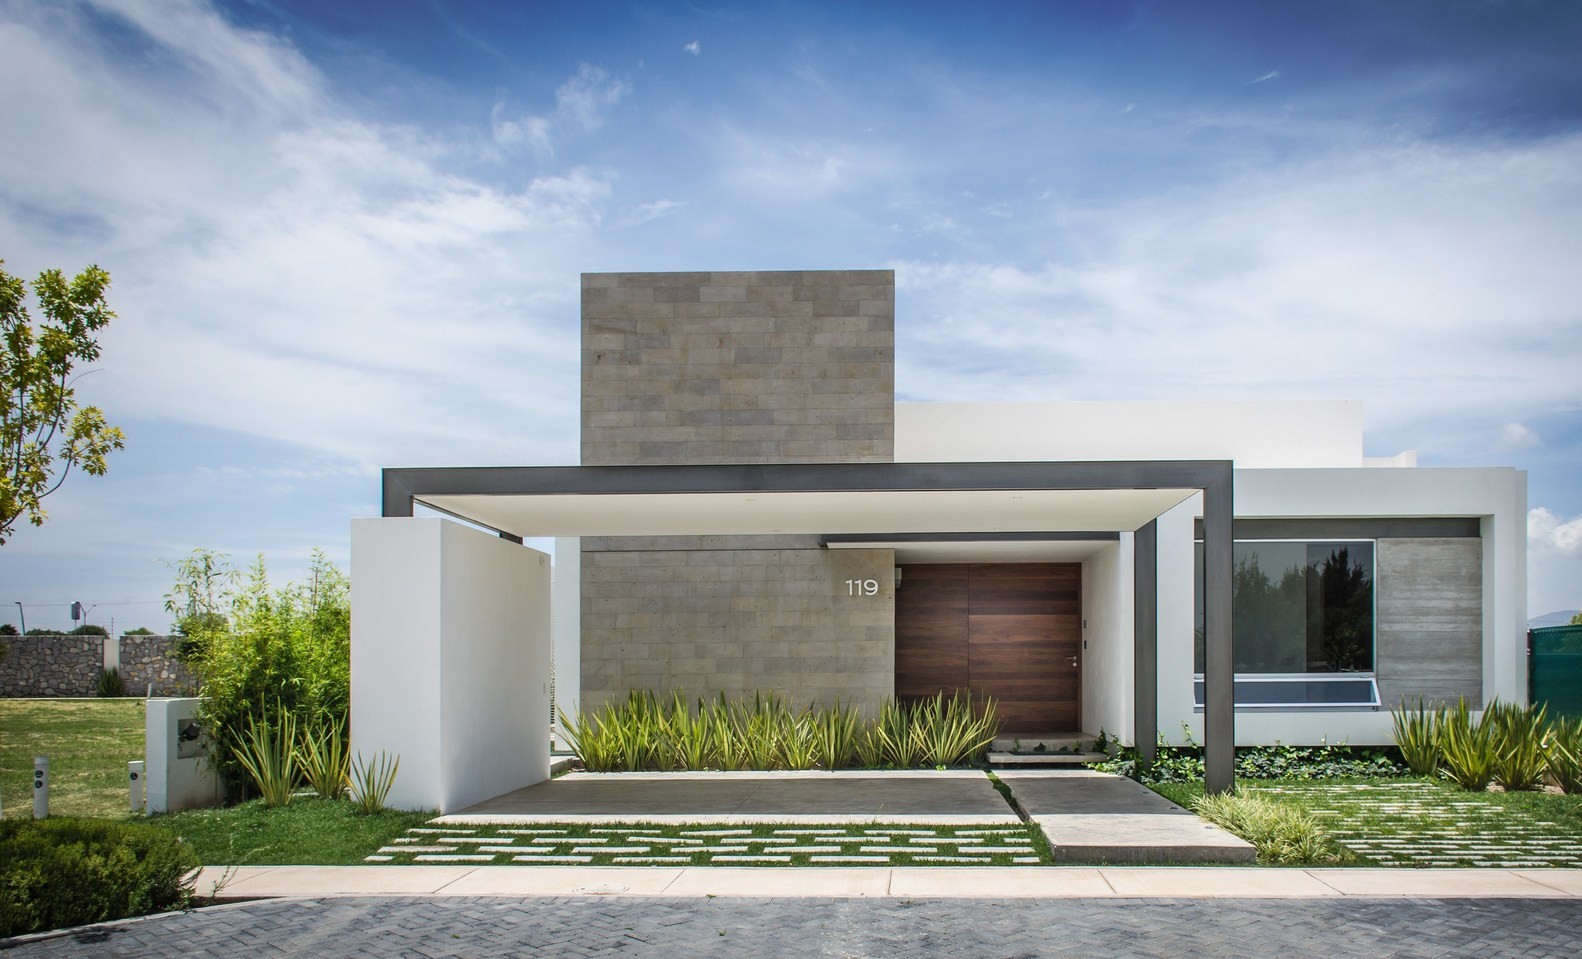 Arquitectura Y Diseño De Interiores Increíble House T02 by Adi Architecture and Interior Design In Mexico Of Arquitectura Y Diseño De Interiores Magnífico Residecia En Renta En Fraccionamiento Royal Class